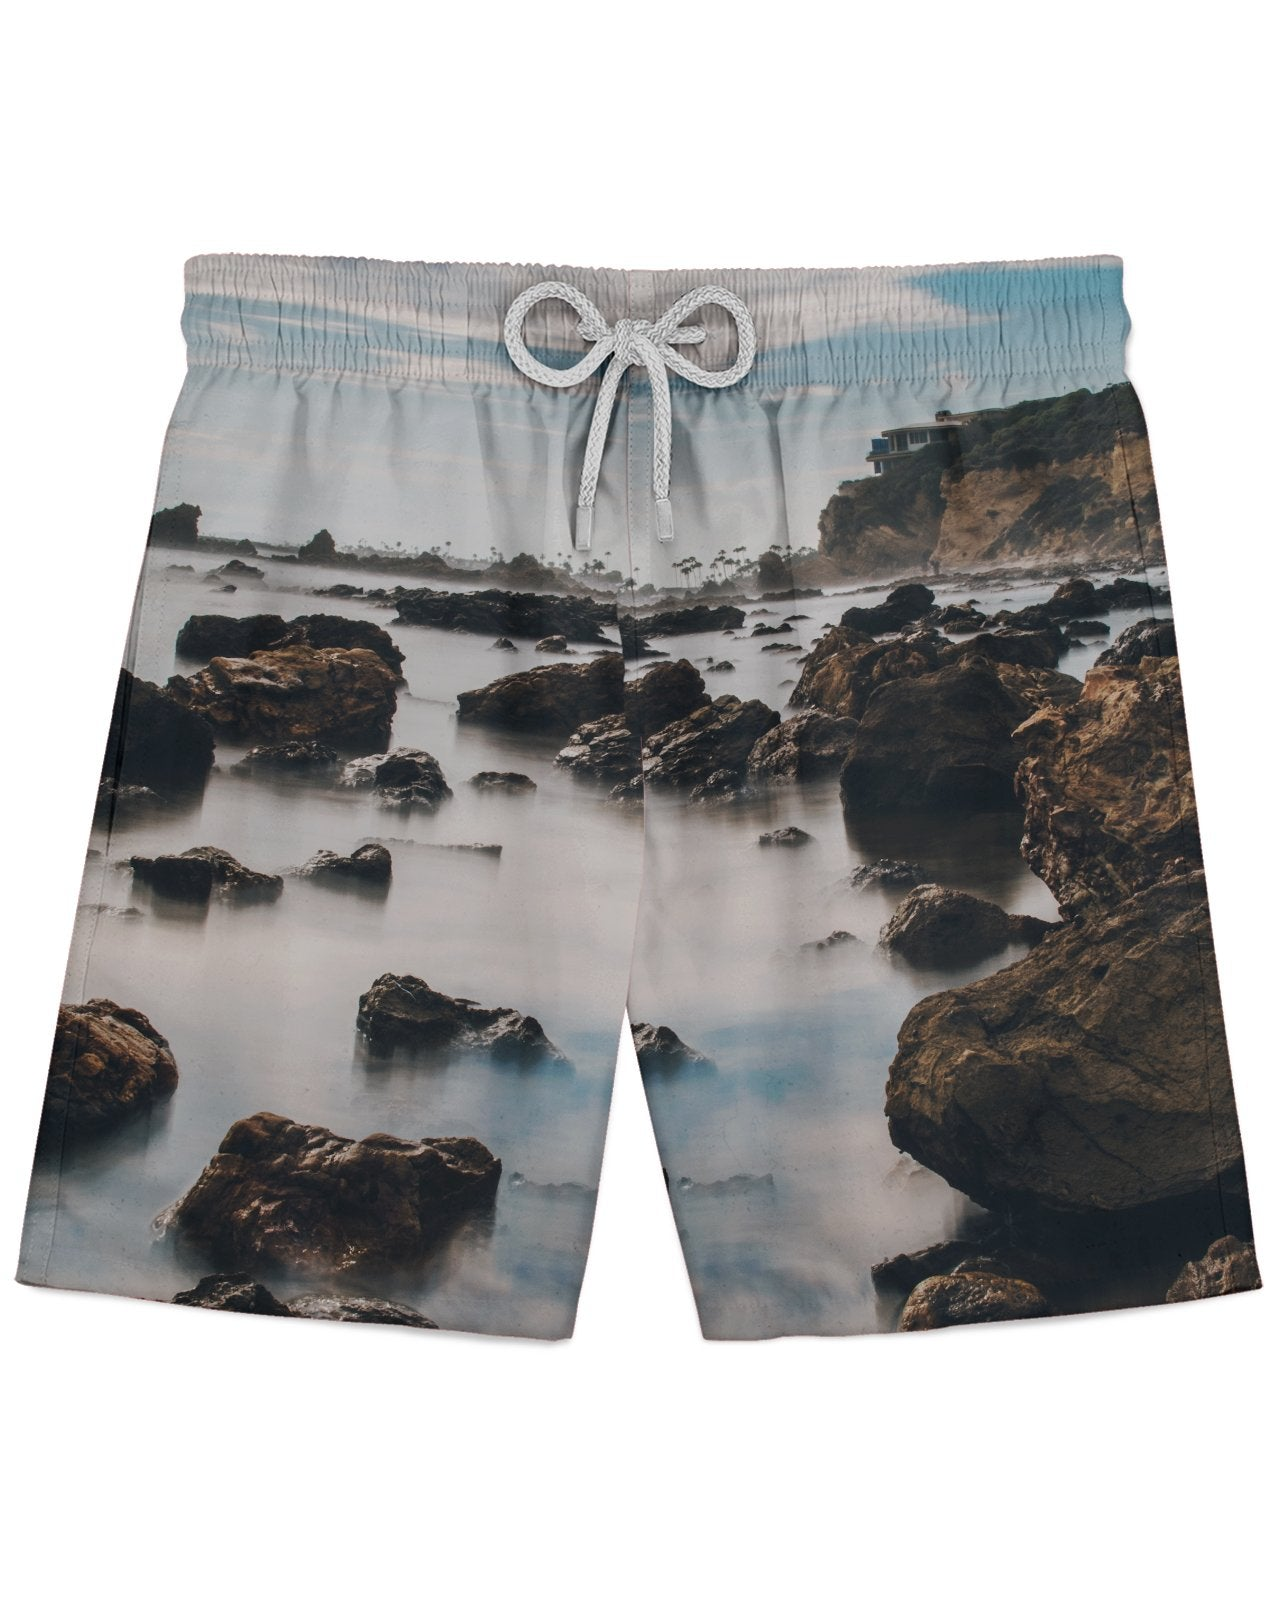 Corona Del Mar Long Exposure Portrait 2 Athletic Shorts